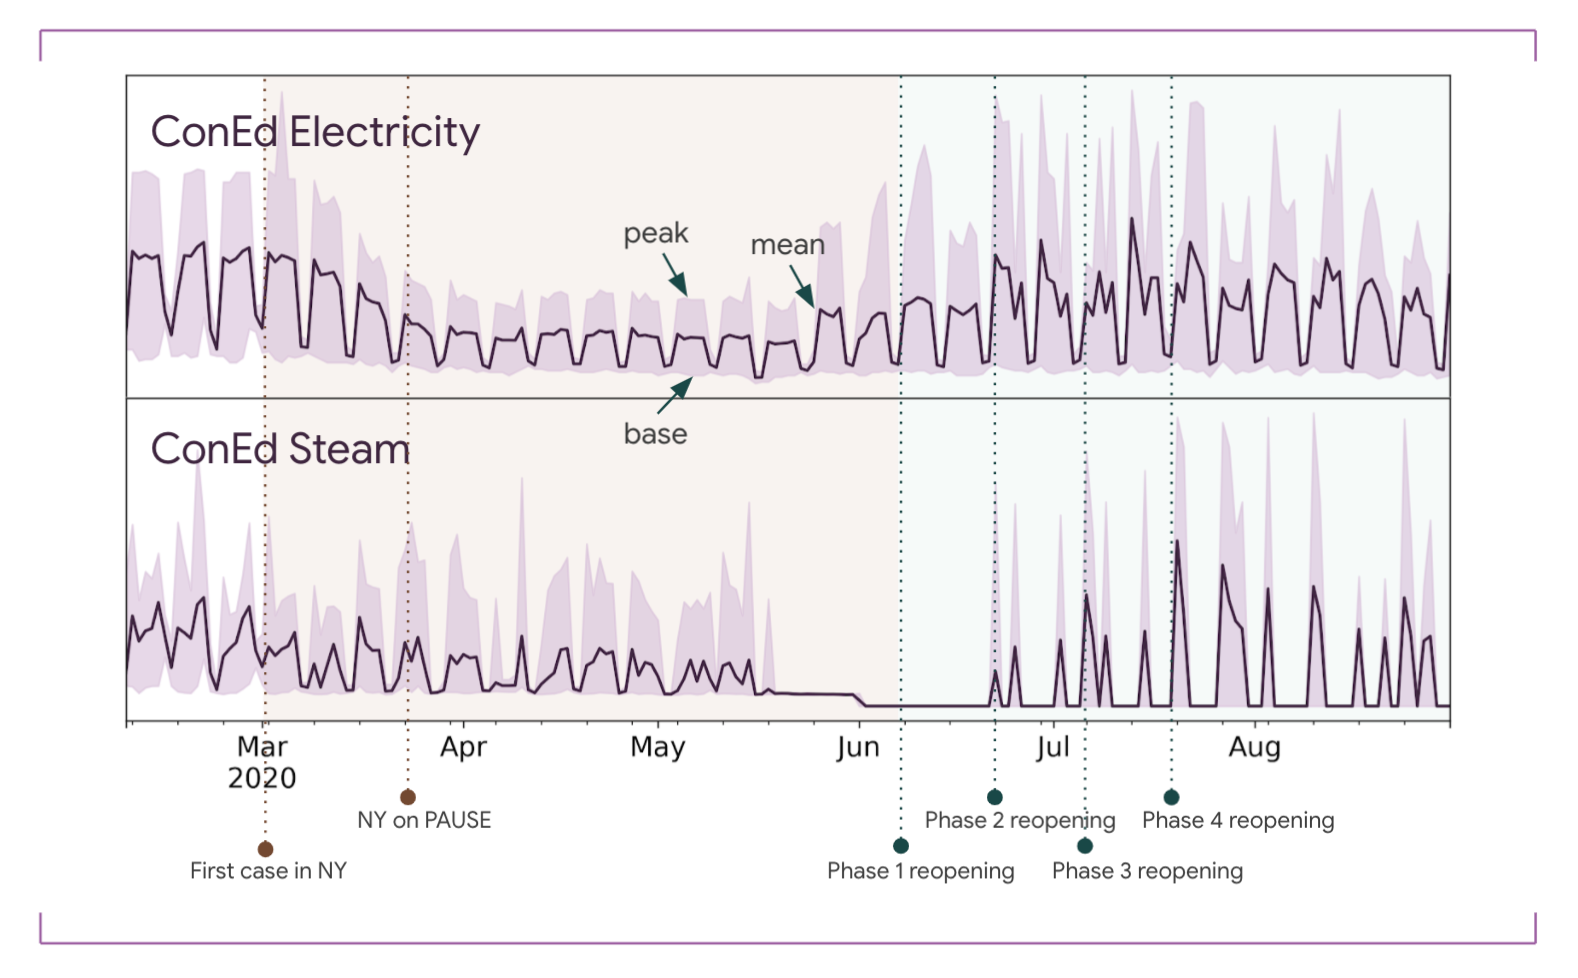 Chart shows two graph of energy use throughout March 2020 to August 2020.